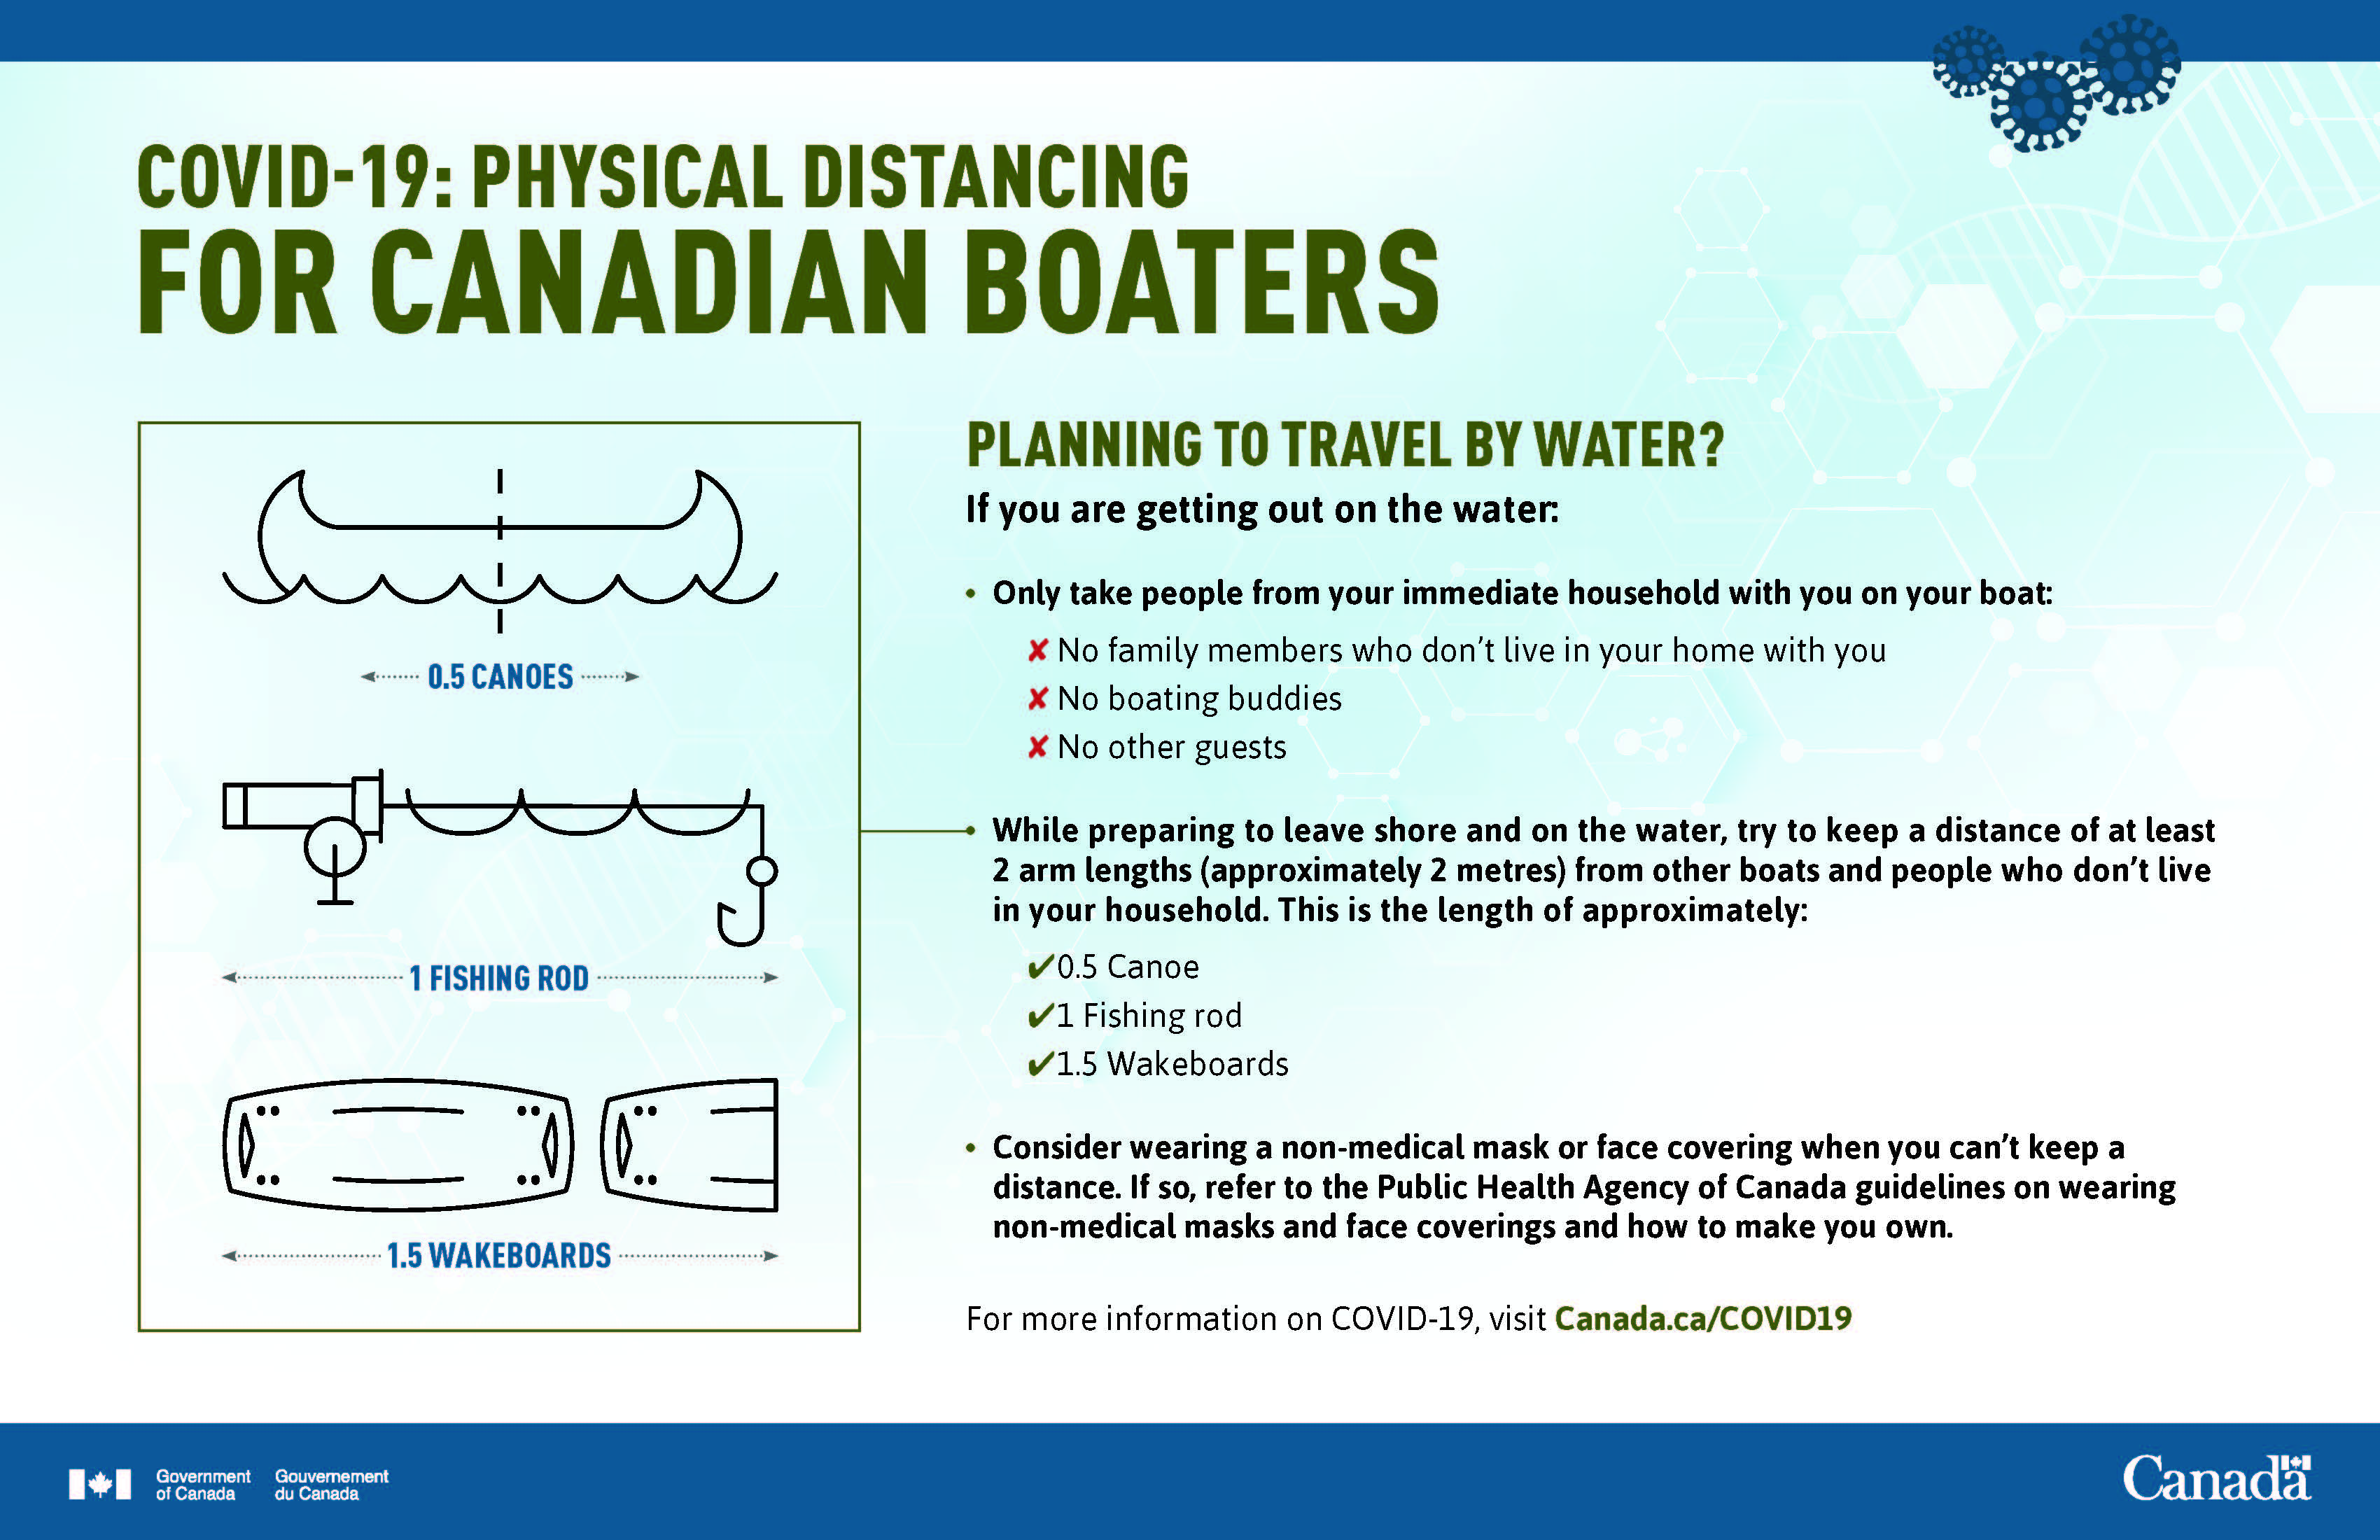 Physical Distancing for Boaters